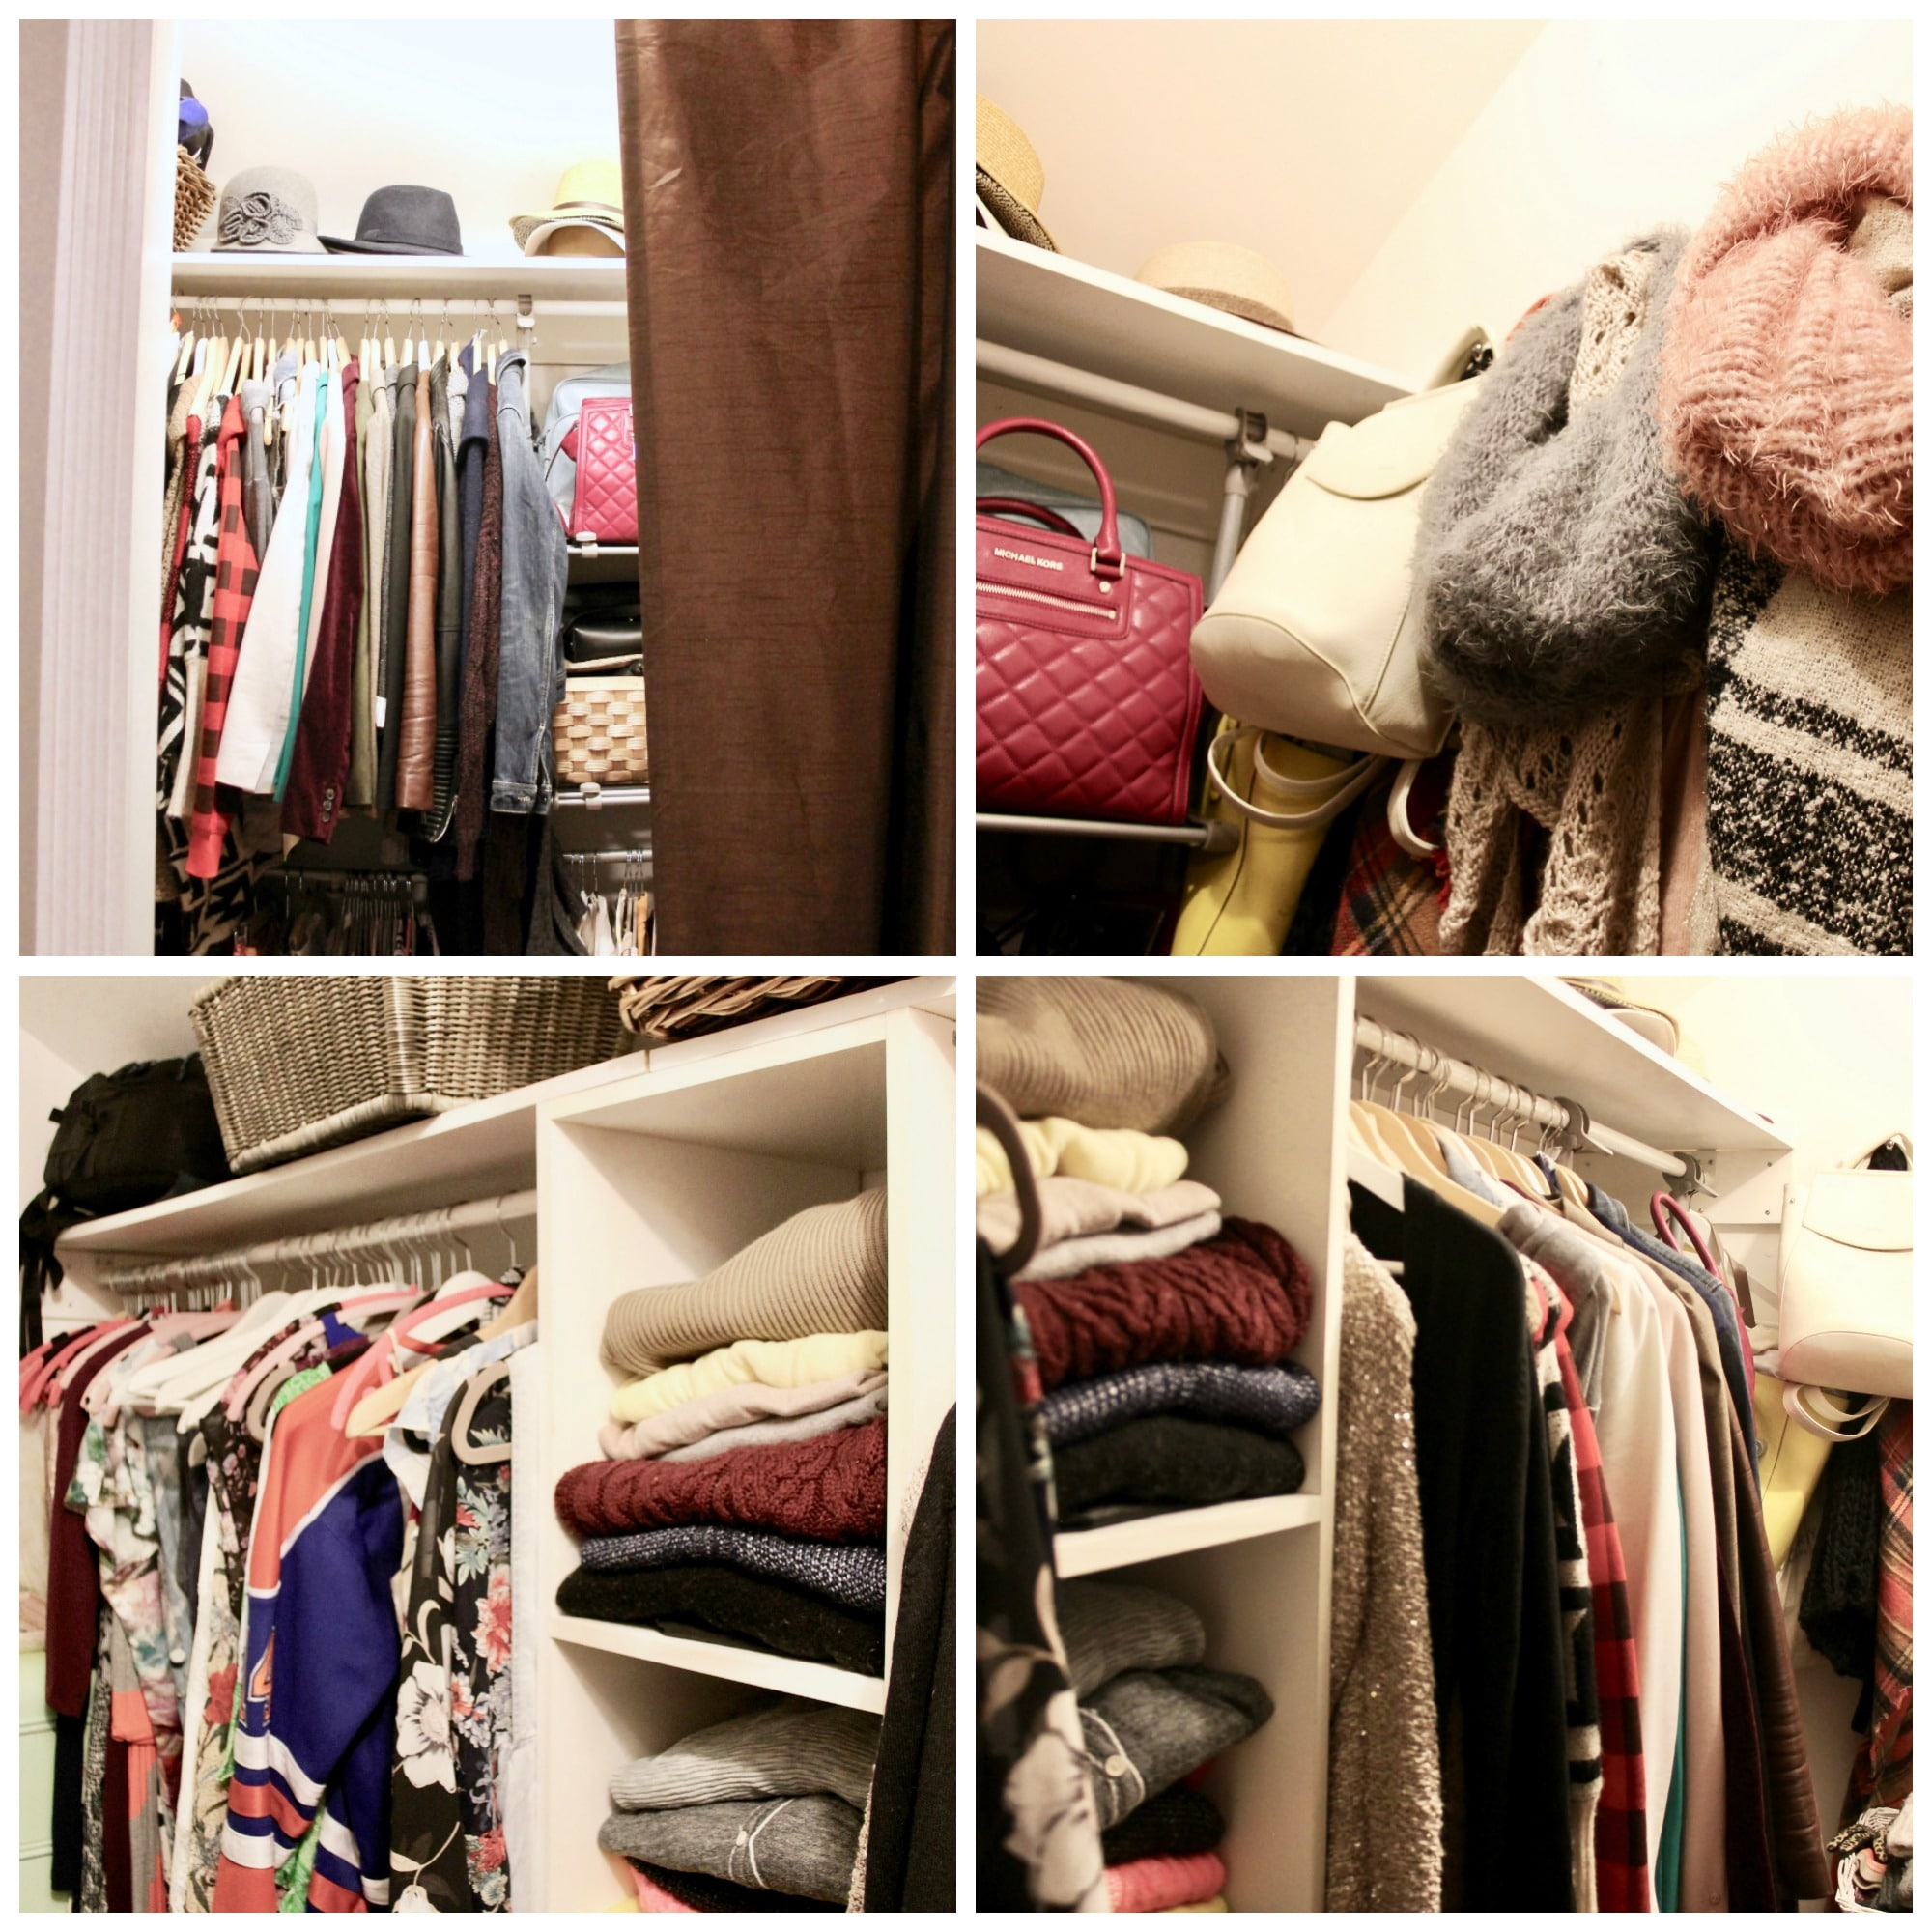 Dream closet reveal-2